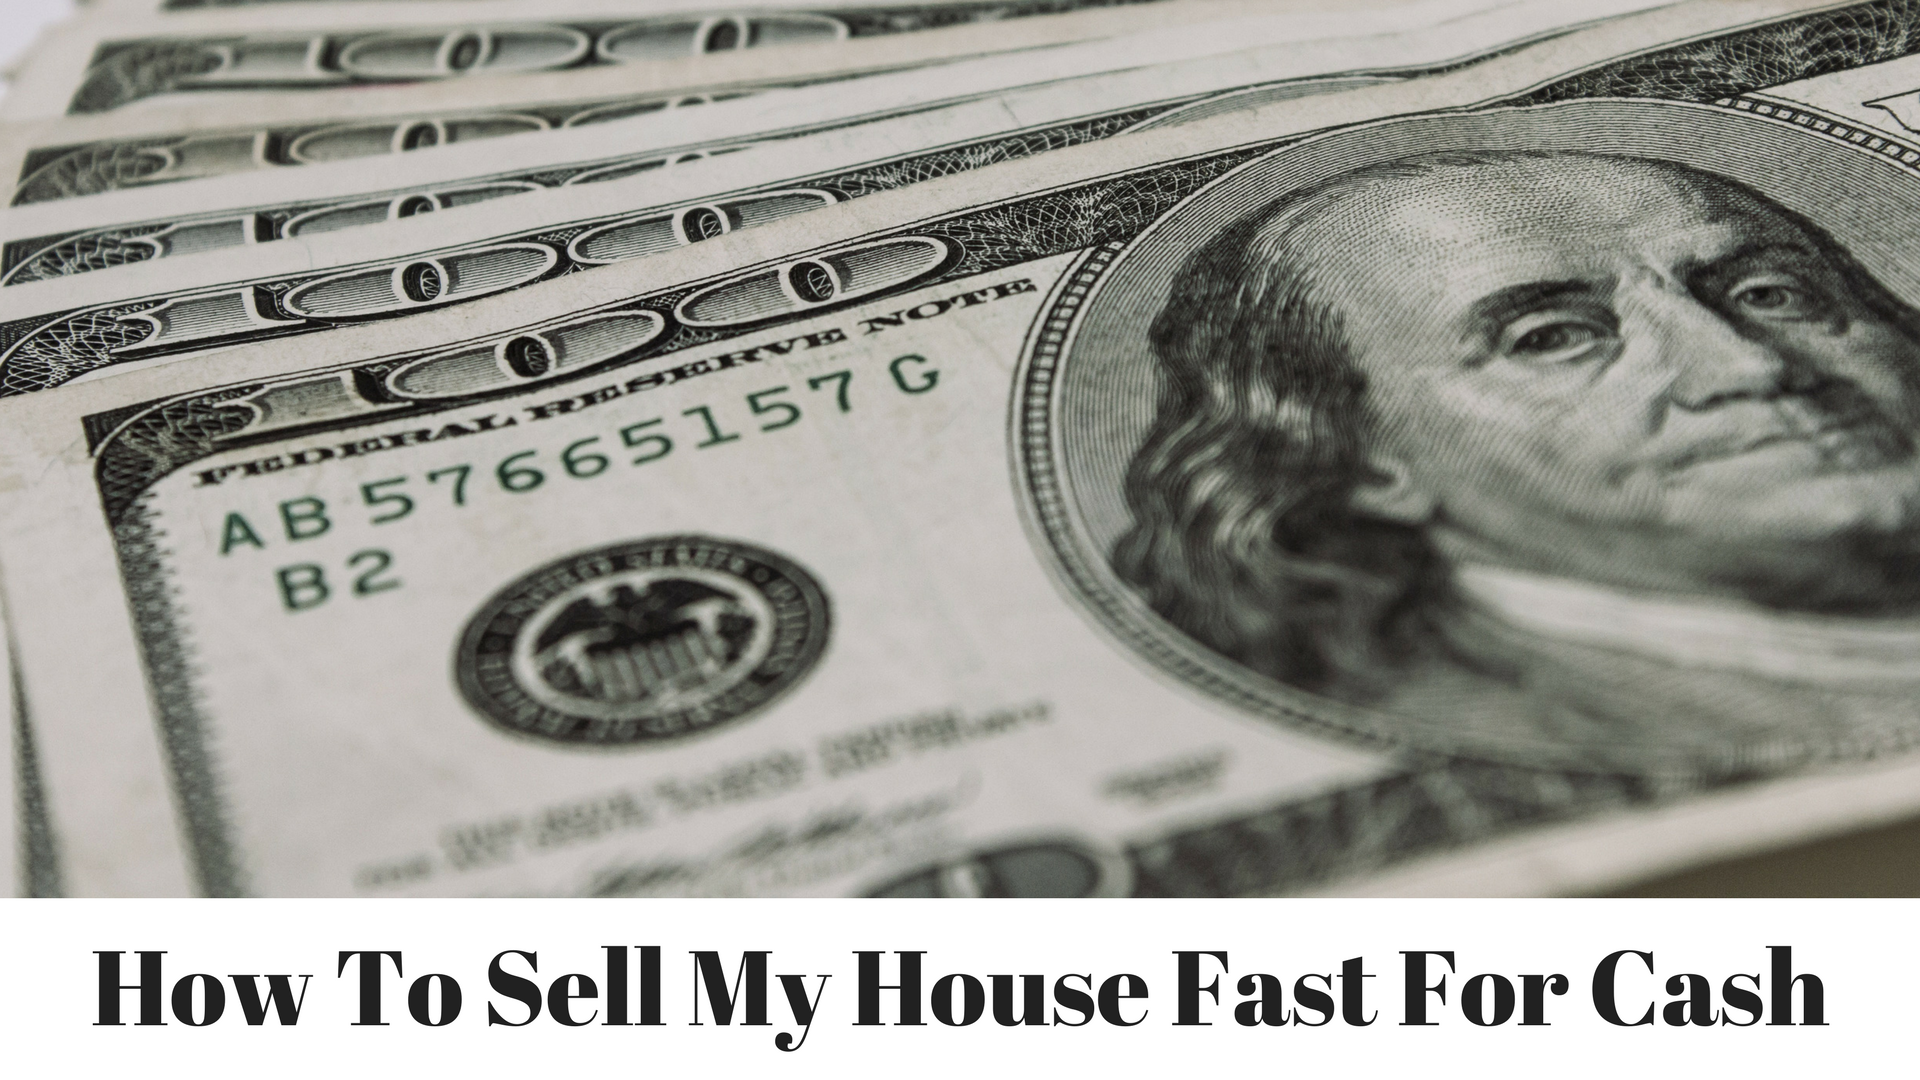 How To Sell My House Fast For Cash